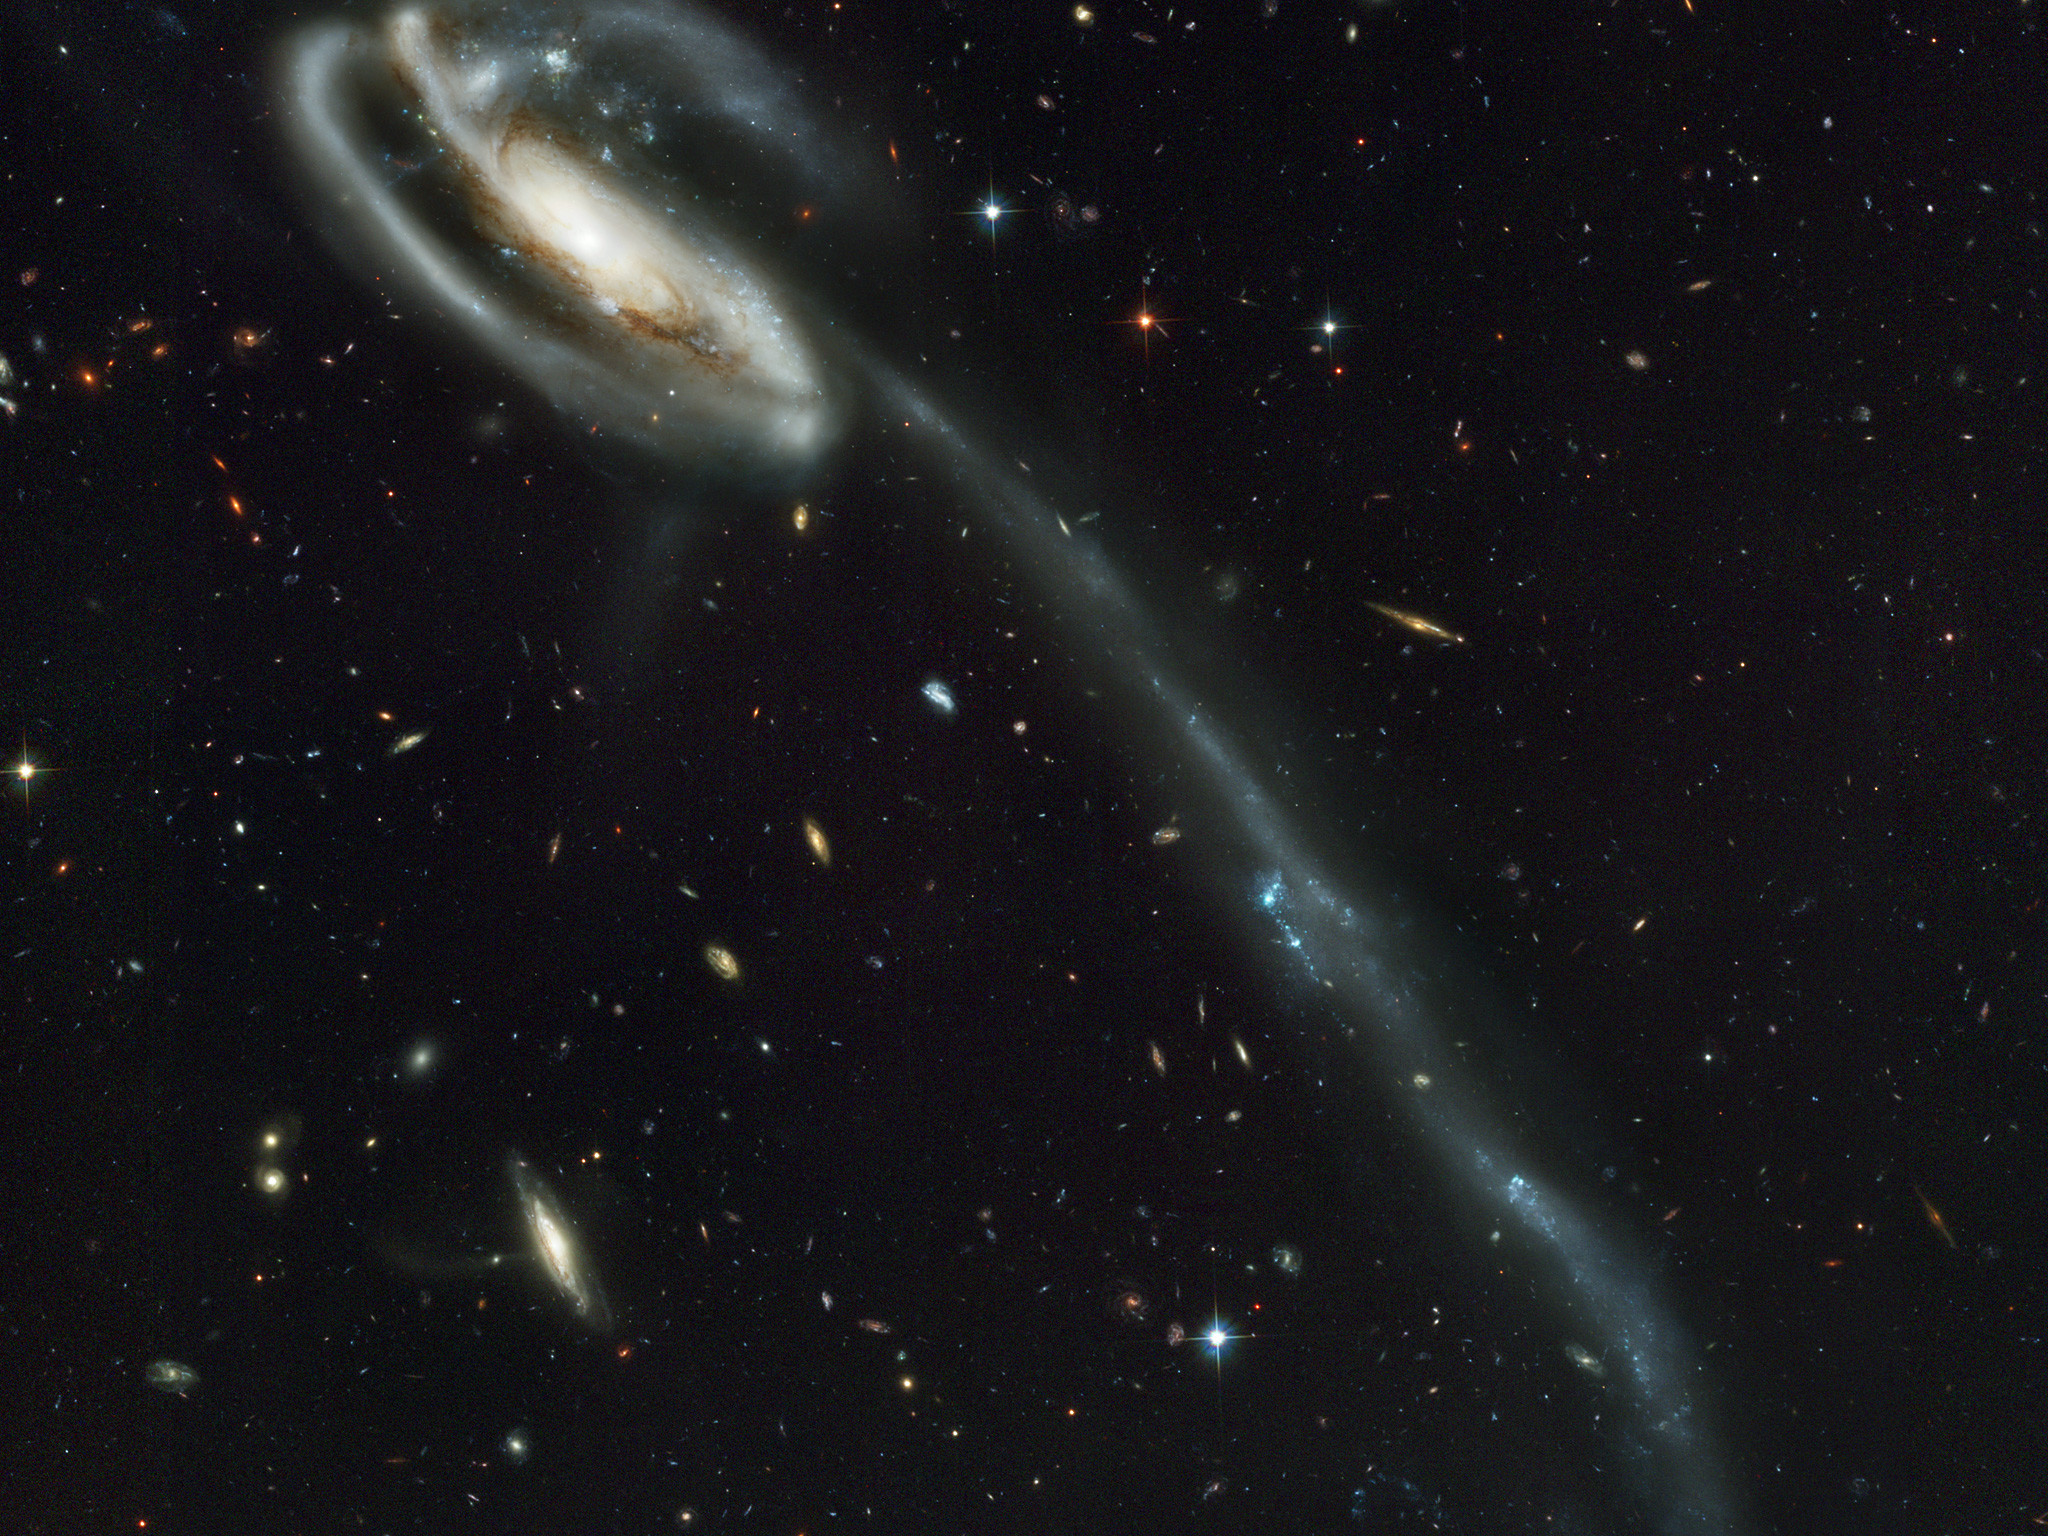 hubble telescope pictures of galaxies - HD1920×1080